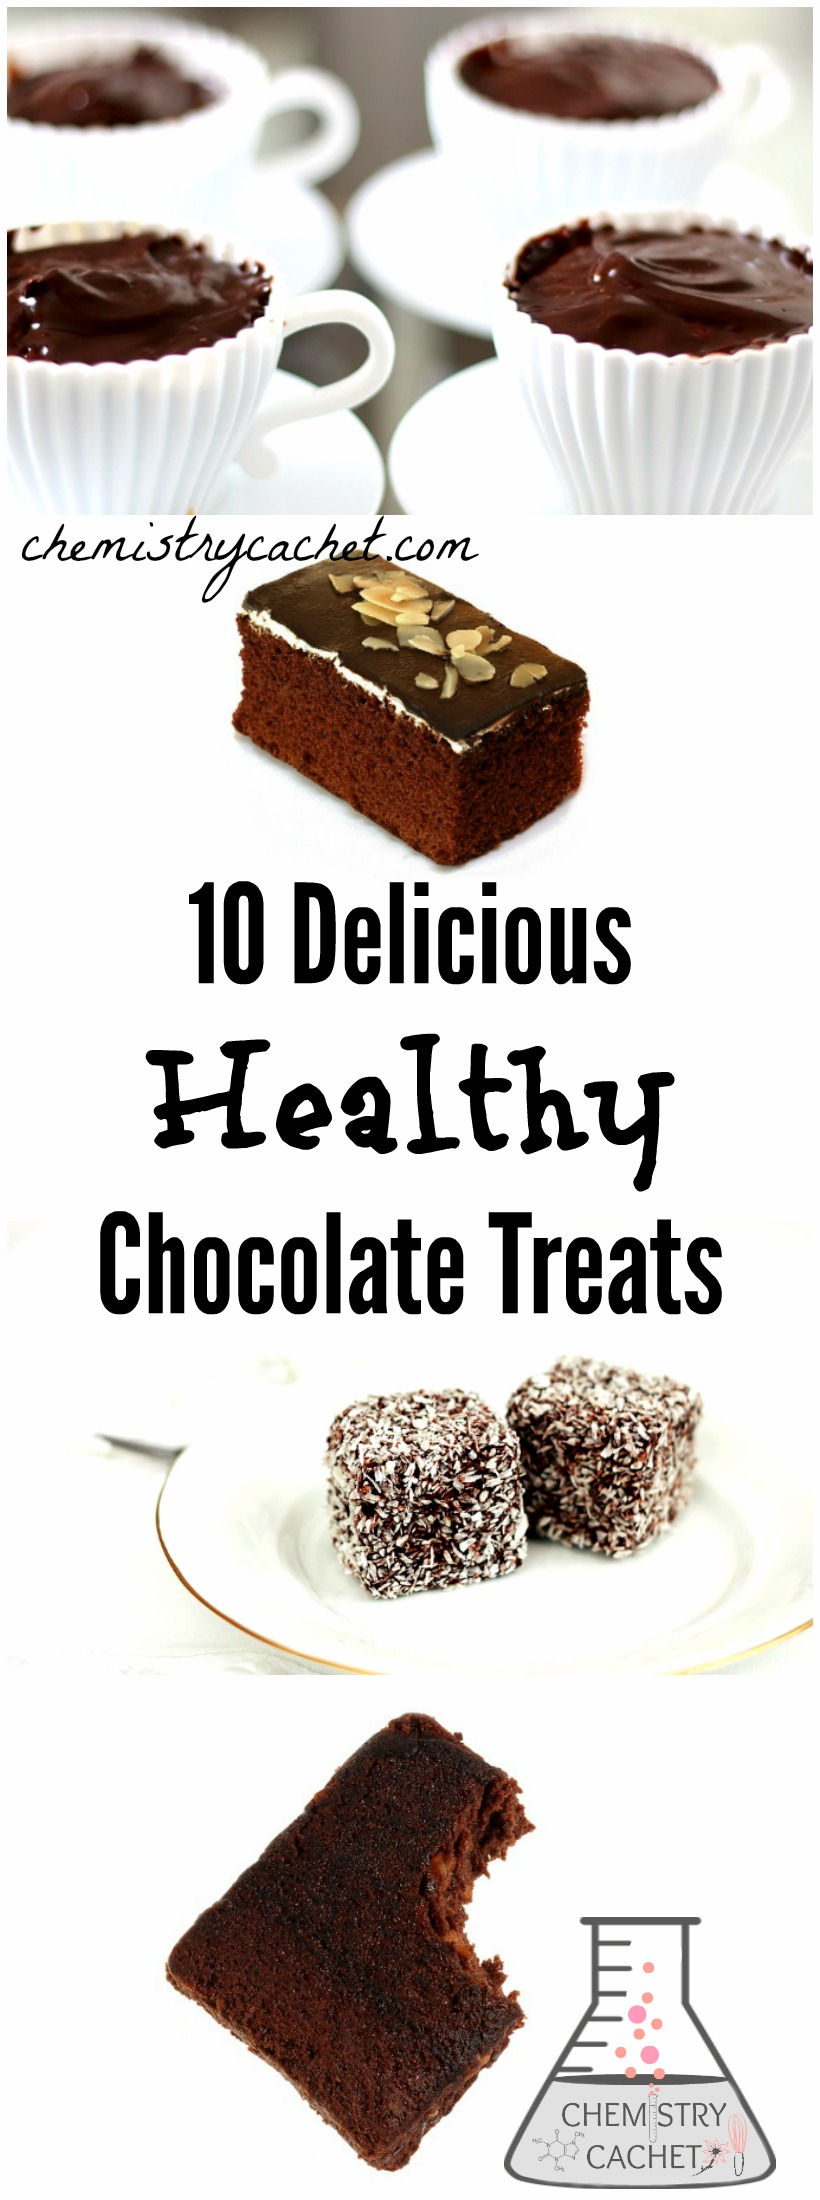 10 Delicious & Healthy Chocolate Treats (That Taste Decadent!) You would never guess these chocolate desserts are good for you too! See them on chemistrycachet.com